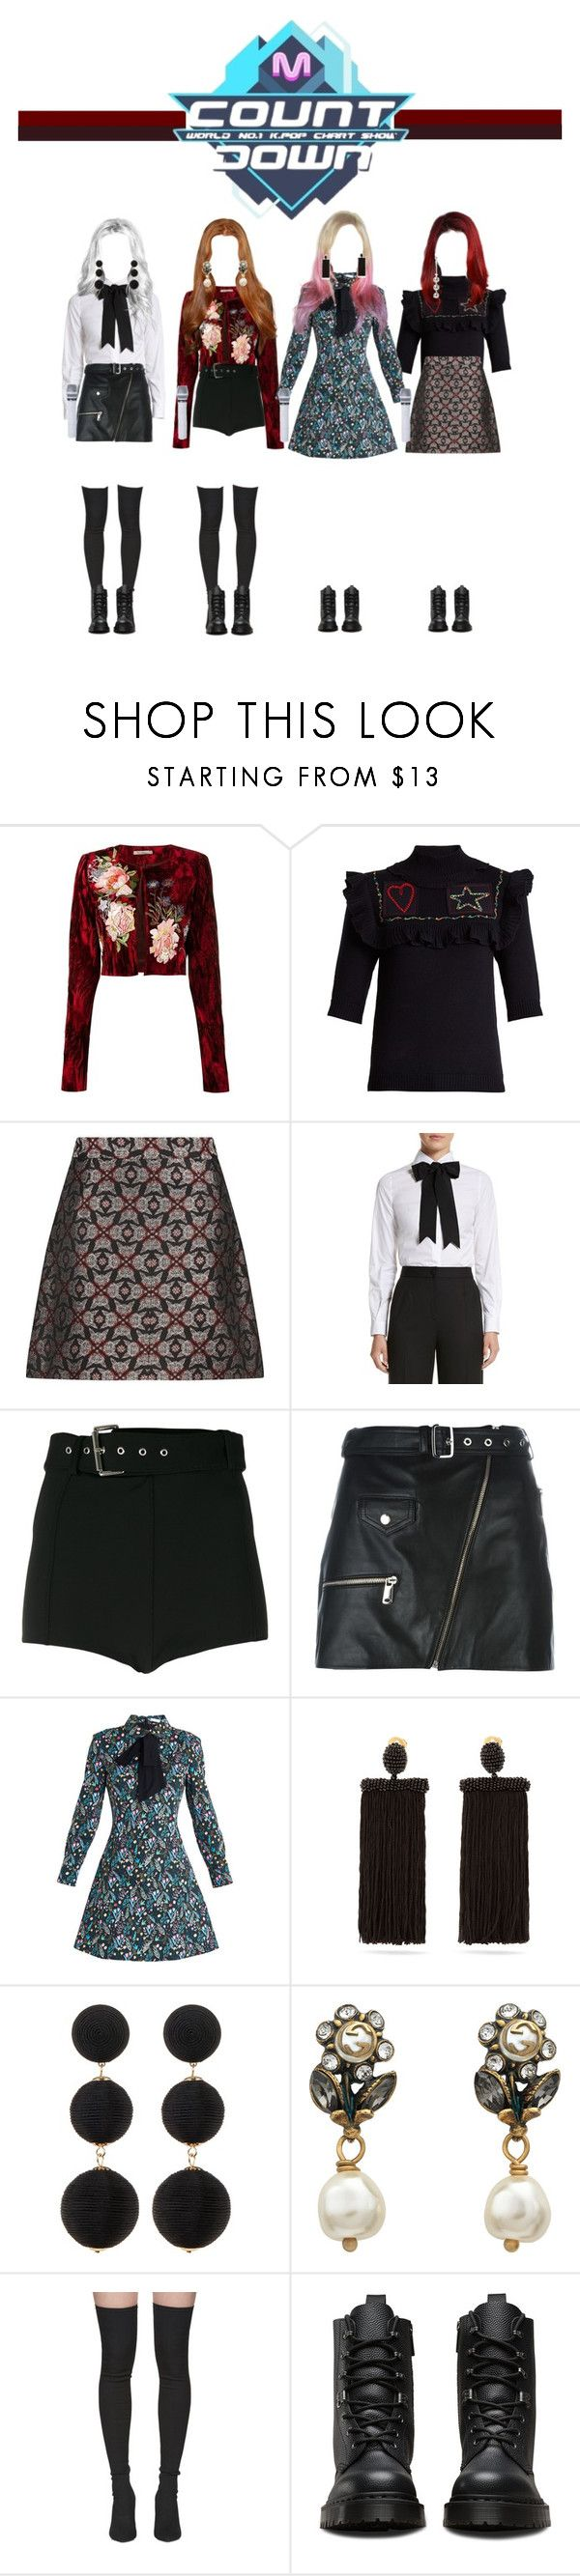 """""""[ M COUNTDOWN ]  Do You Wanna Play ?"""" by officialsrjh ❤ liked on Polyvore featuring Alice Archer, Valentino, Dolce&Gabbana, Versus, Manokhi, VIVETTA, Oscar de la Renta, Cara, Gucci and Yeezy by Kanye West"""